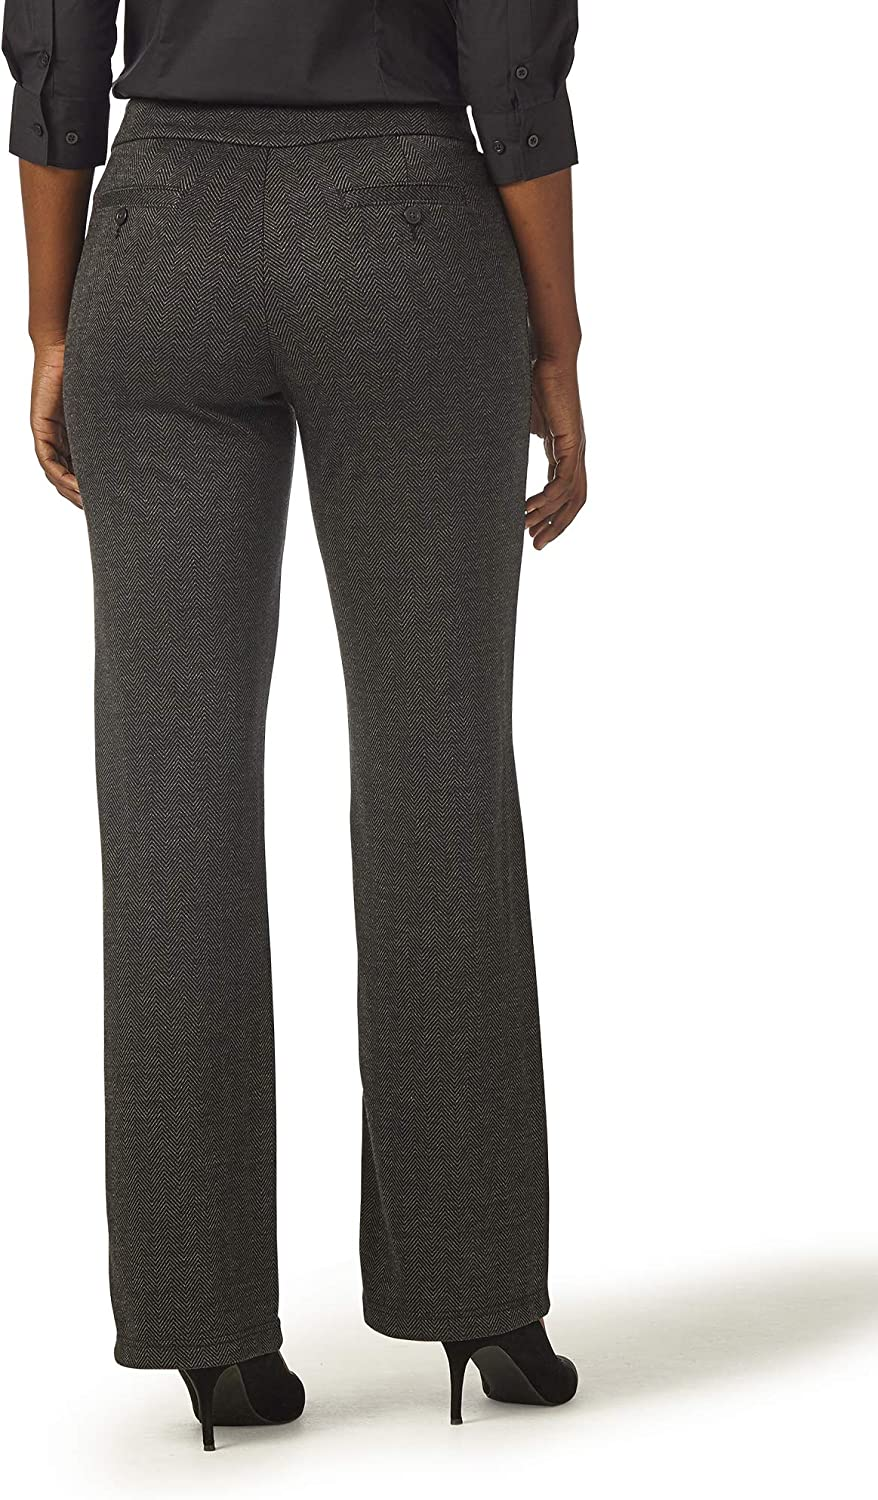 Riders by Lee Indigo Womens Ponte Knit Pant